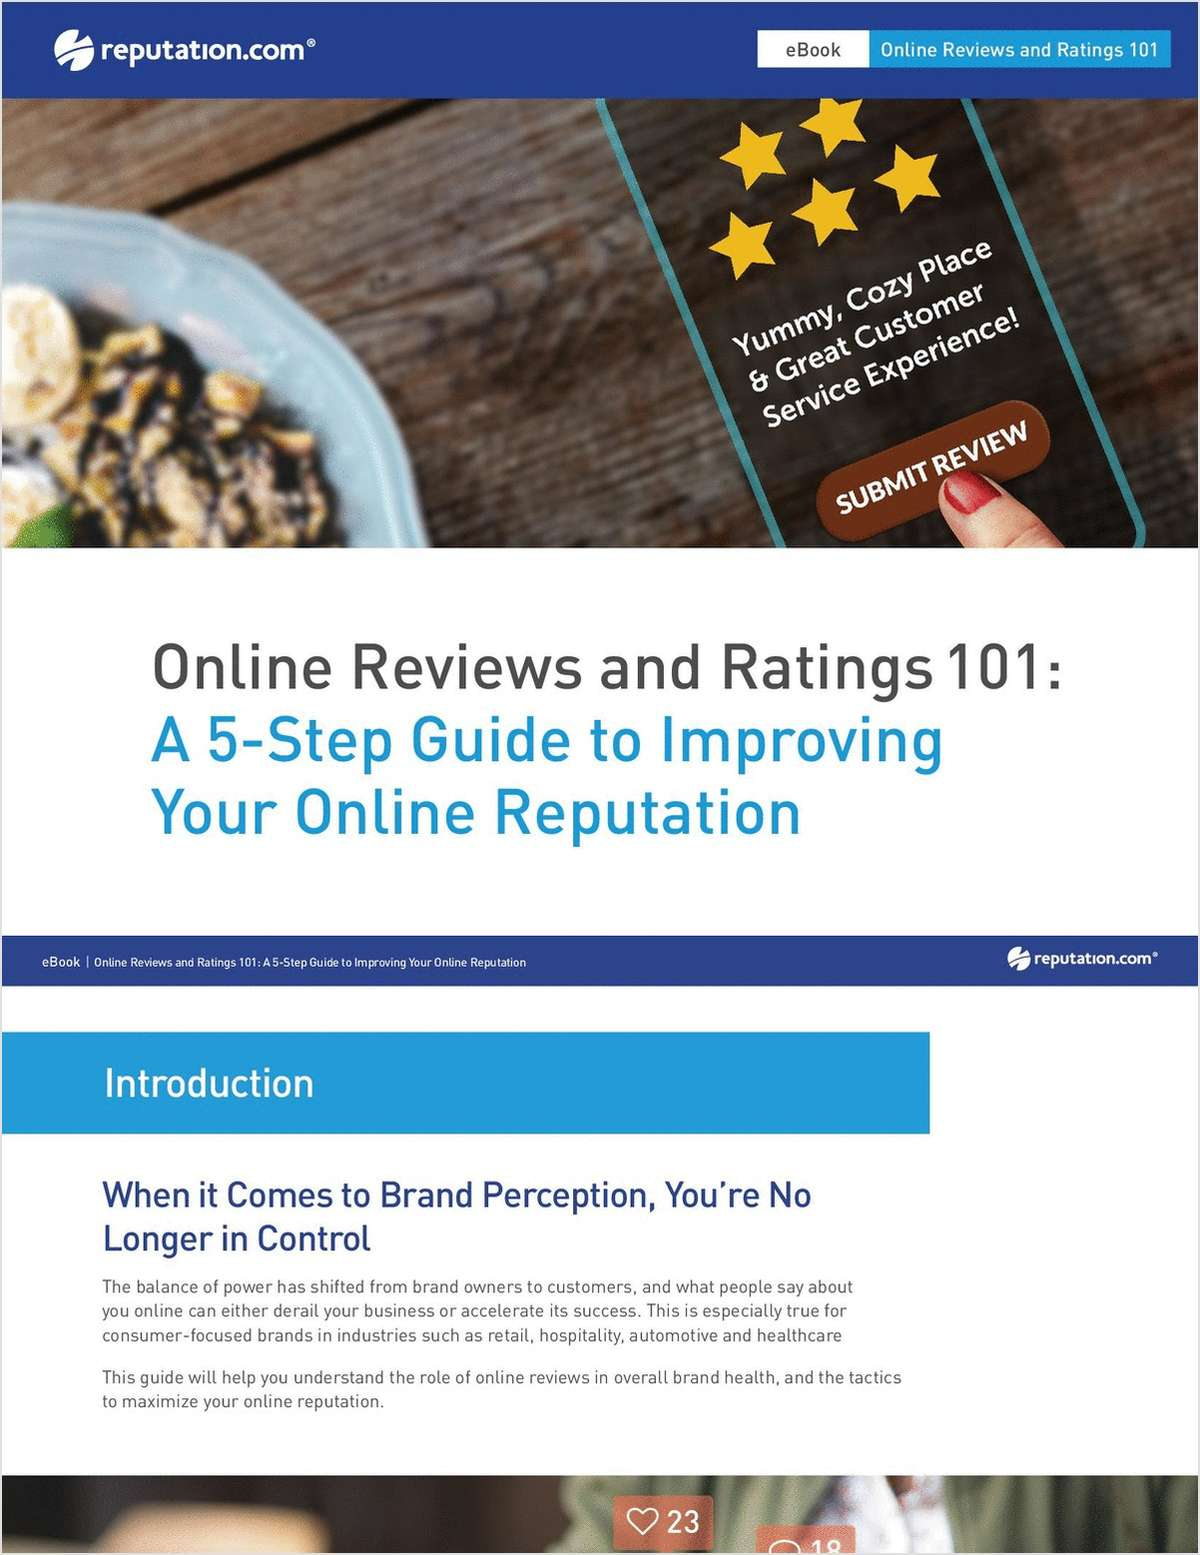 Online Reviews and Ratings 101